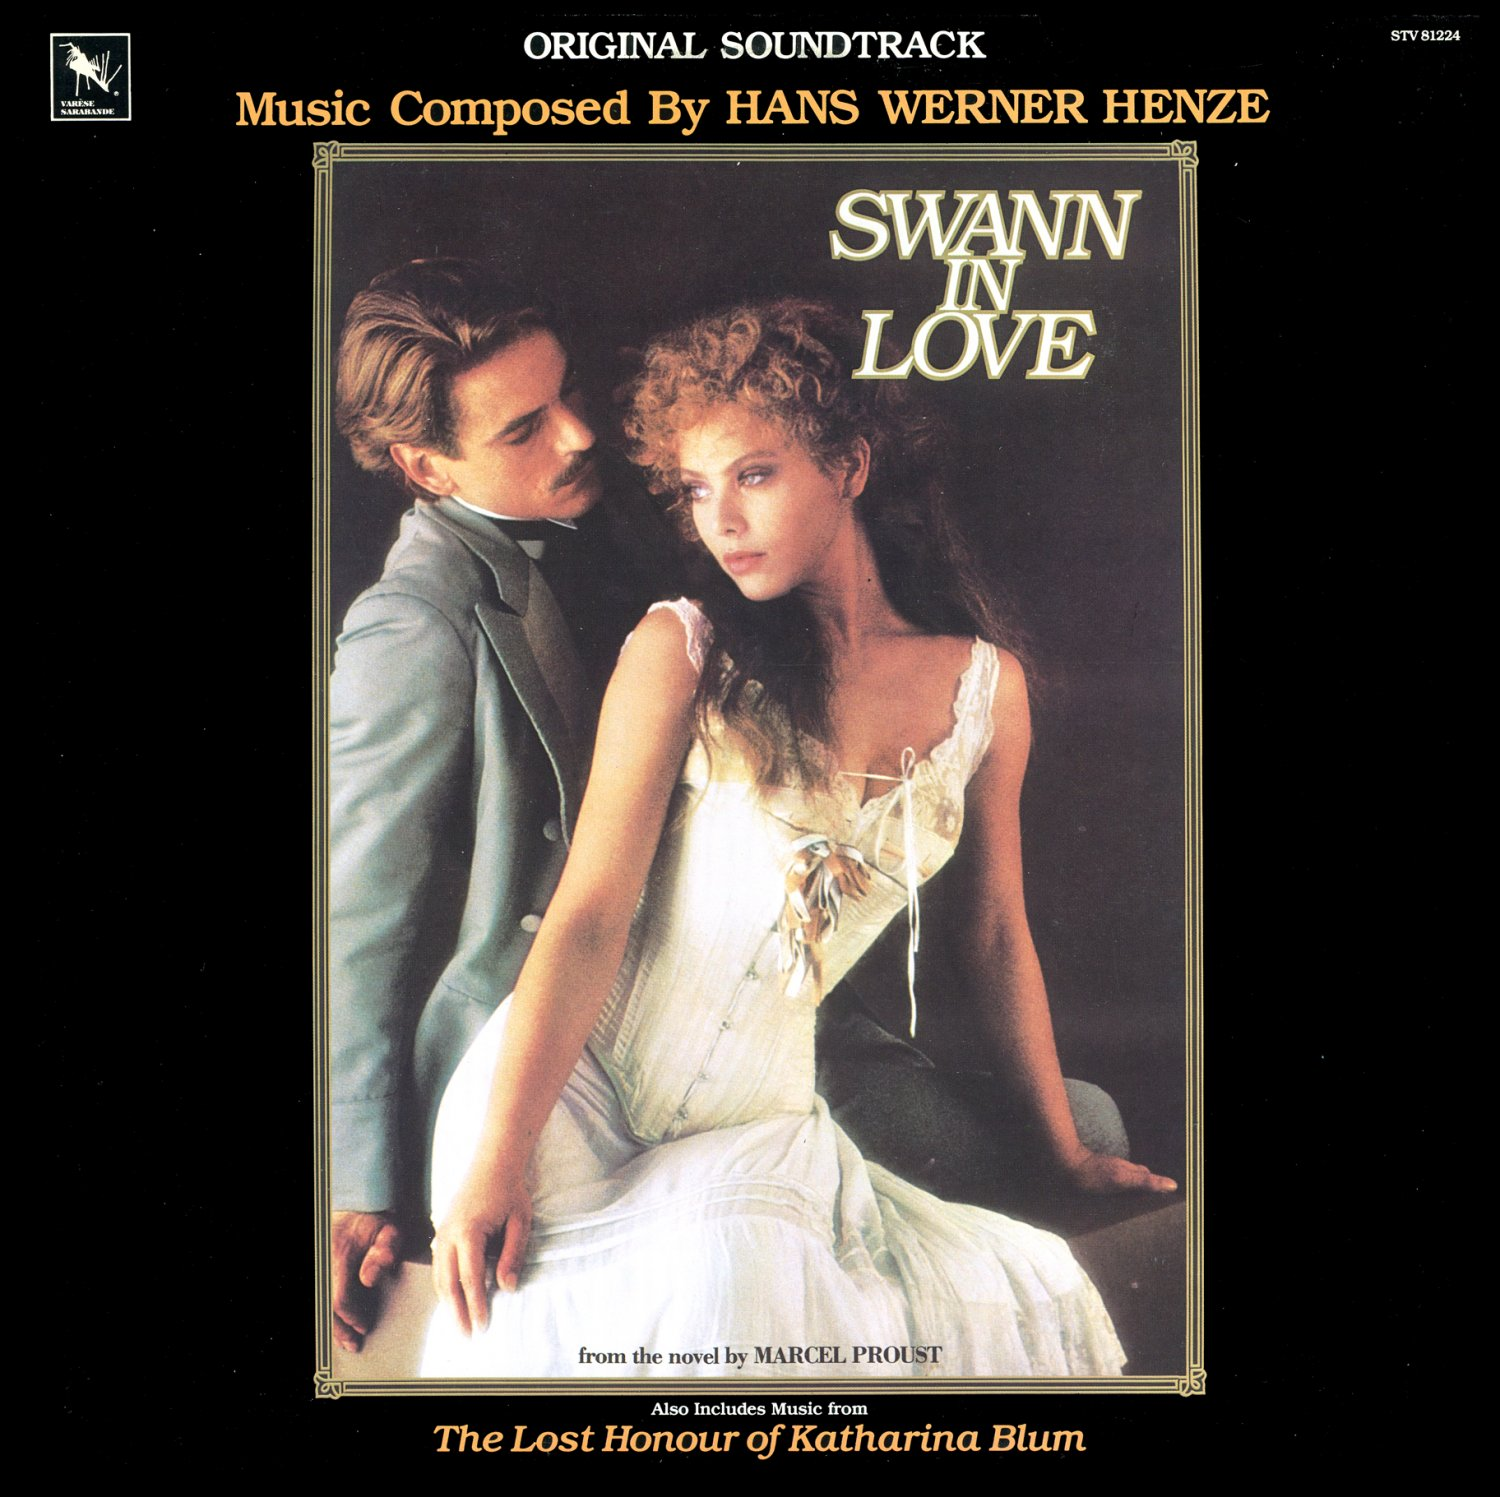 Swann In Love - Original Soundtrack, Hans Werner Henze OST LP/CD